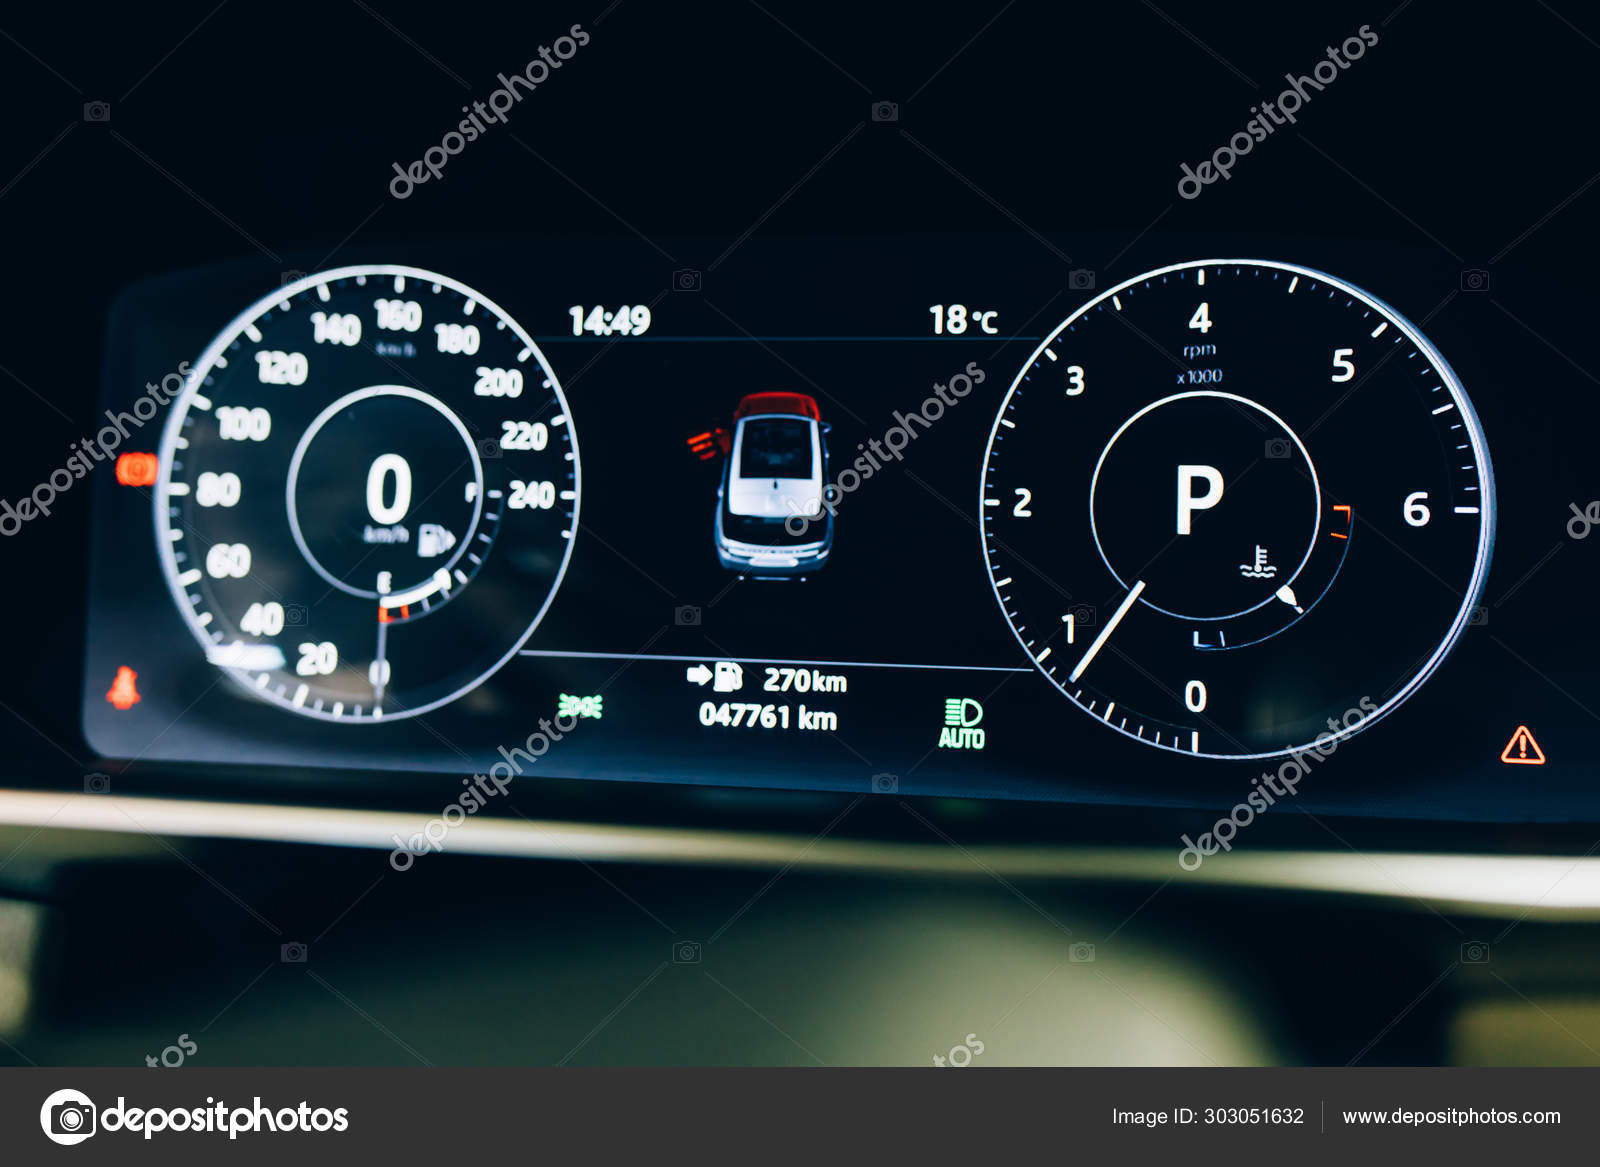 Modern Car Automobile Dashboard Panel Car Hud Speedometer Instrument Panel Stock Photo C Htanak 303051632